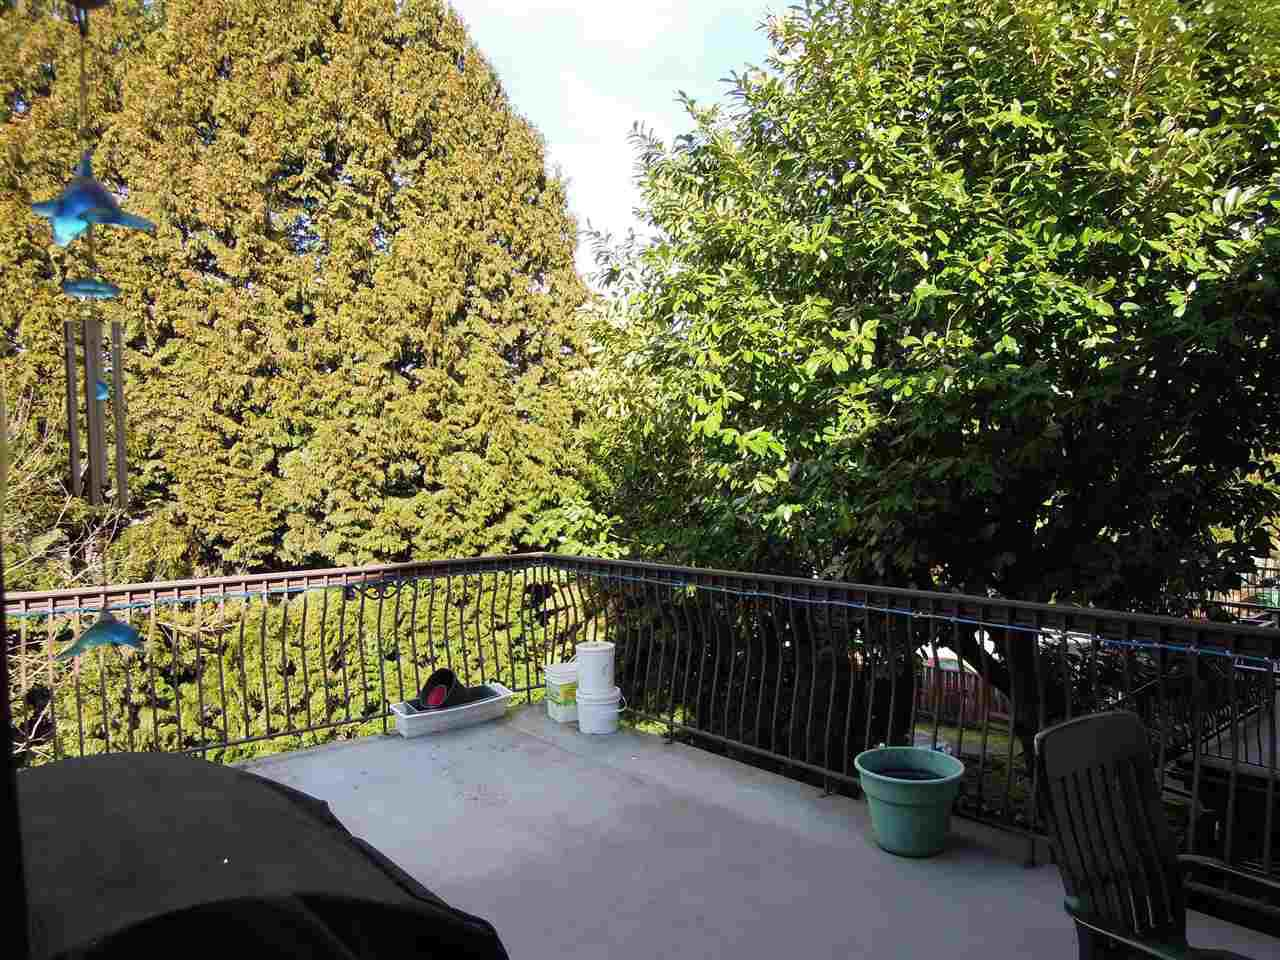 Photo 13: Photos: 3080 ROYAL OAK AVENUE in Burnaby: Central BN House 1/2 Duplex for sale (Burnaby North)  : MLS®# R2143810